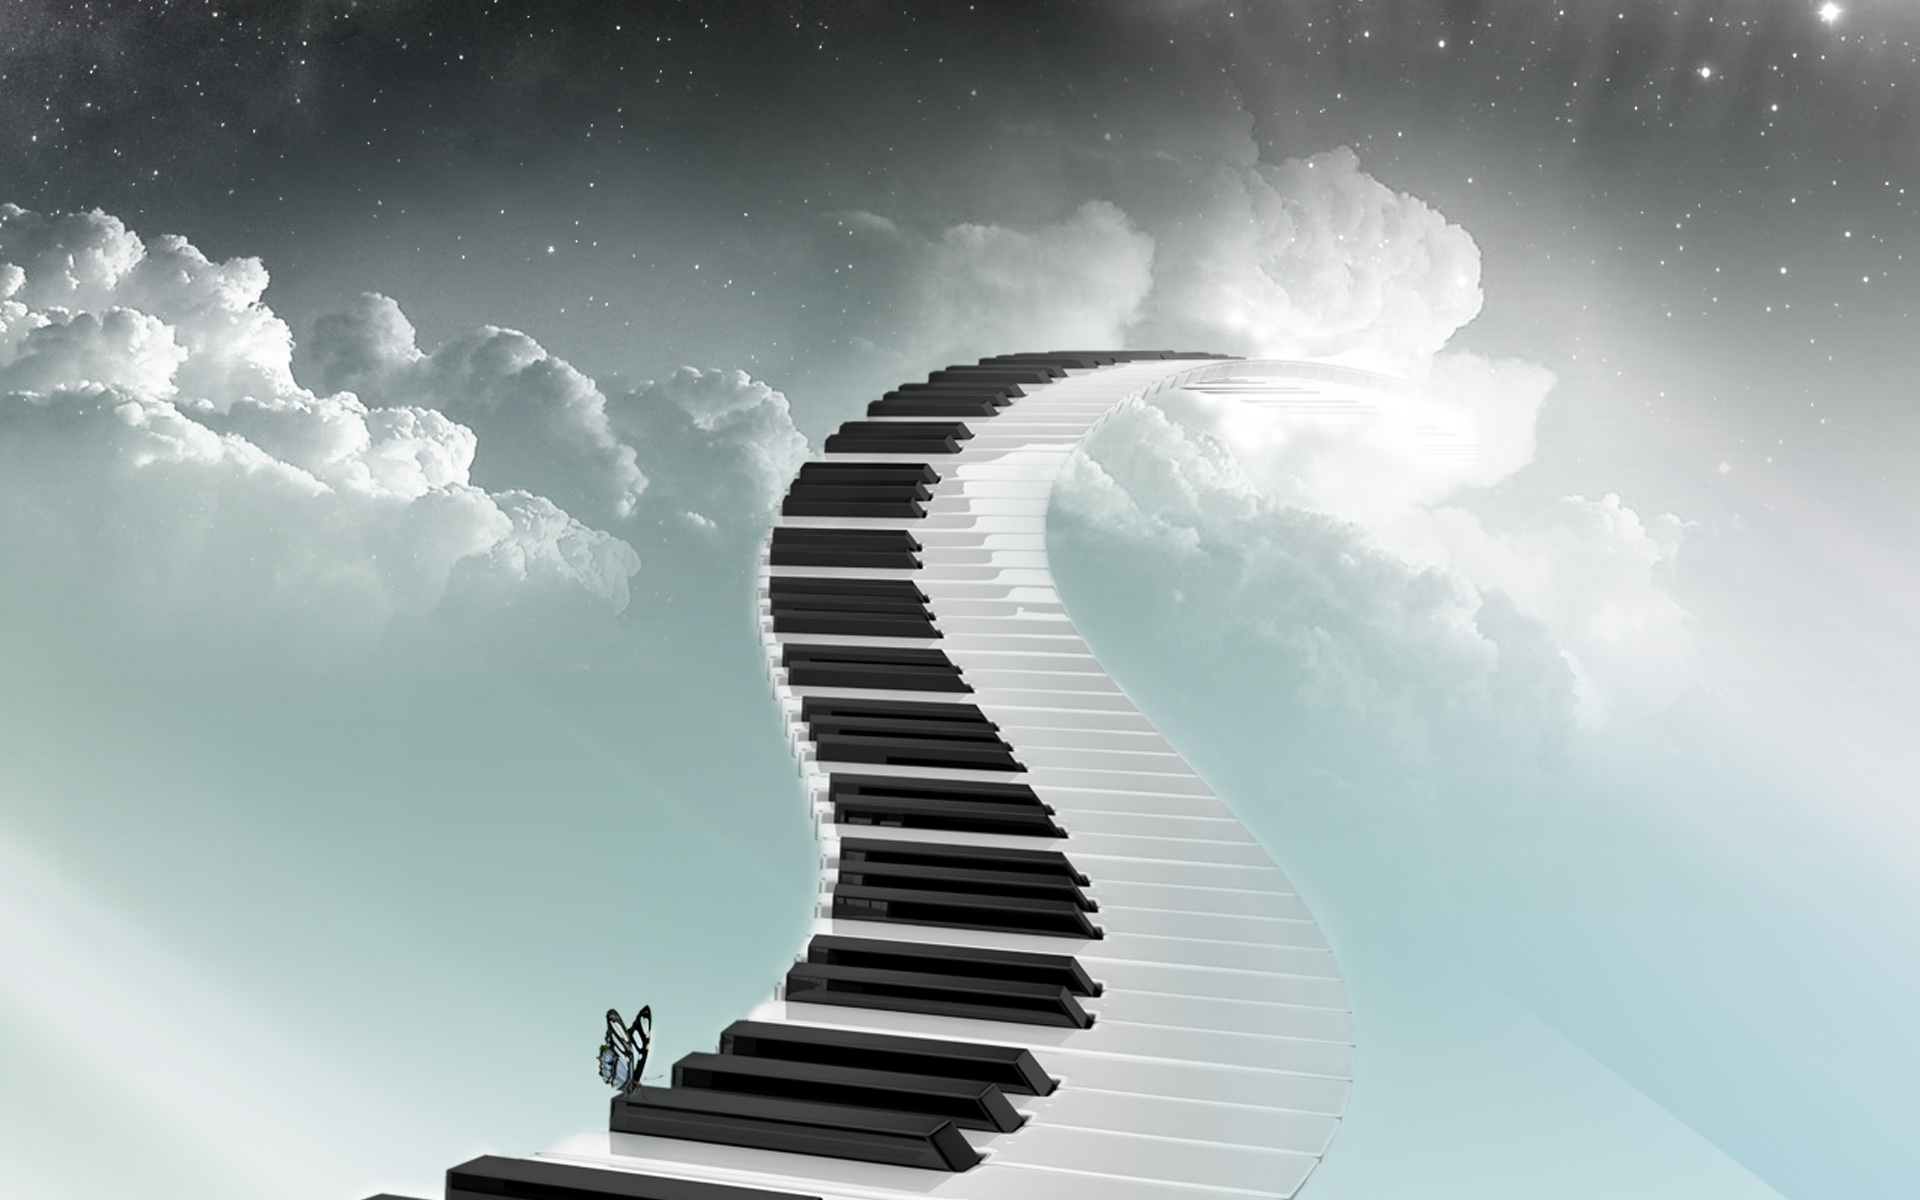 Piano hd wallpaper background image 1920x1200 id - Cool piano backgrounds ...